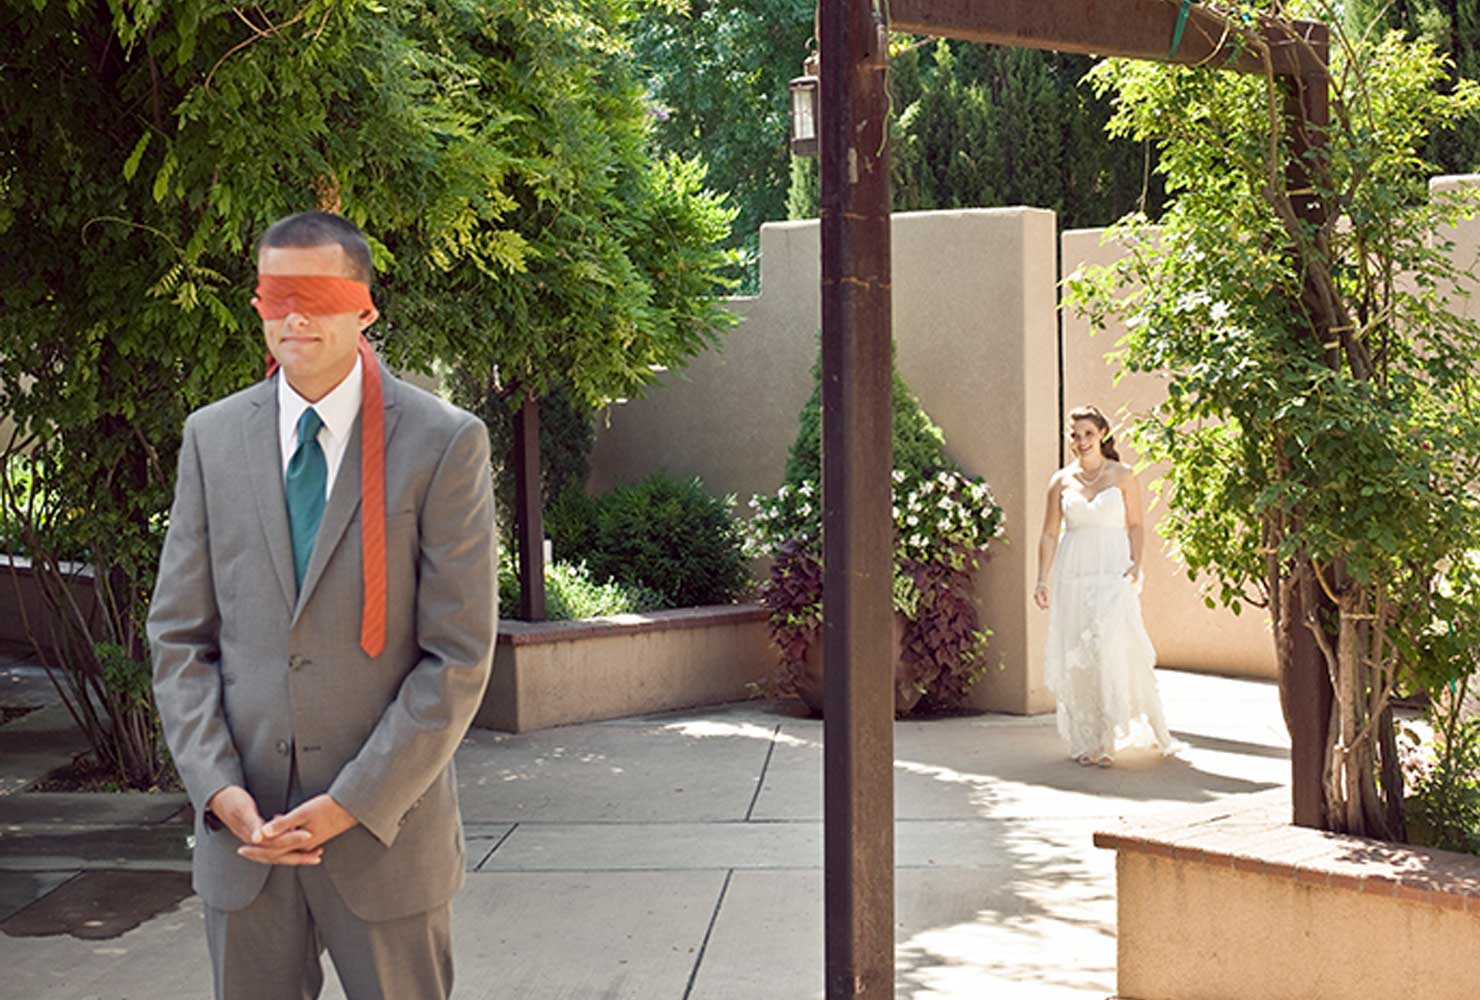 Groom with orange tie blindfold